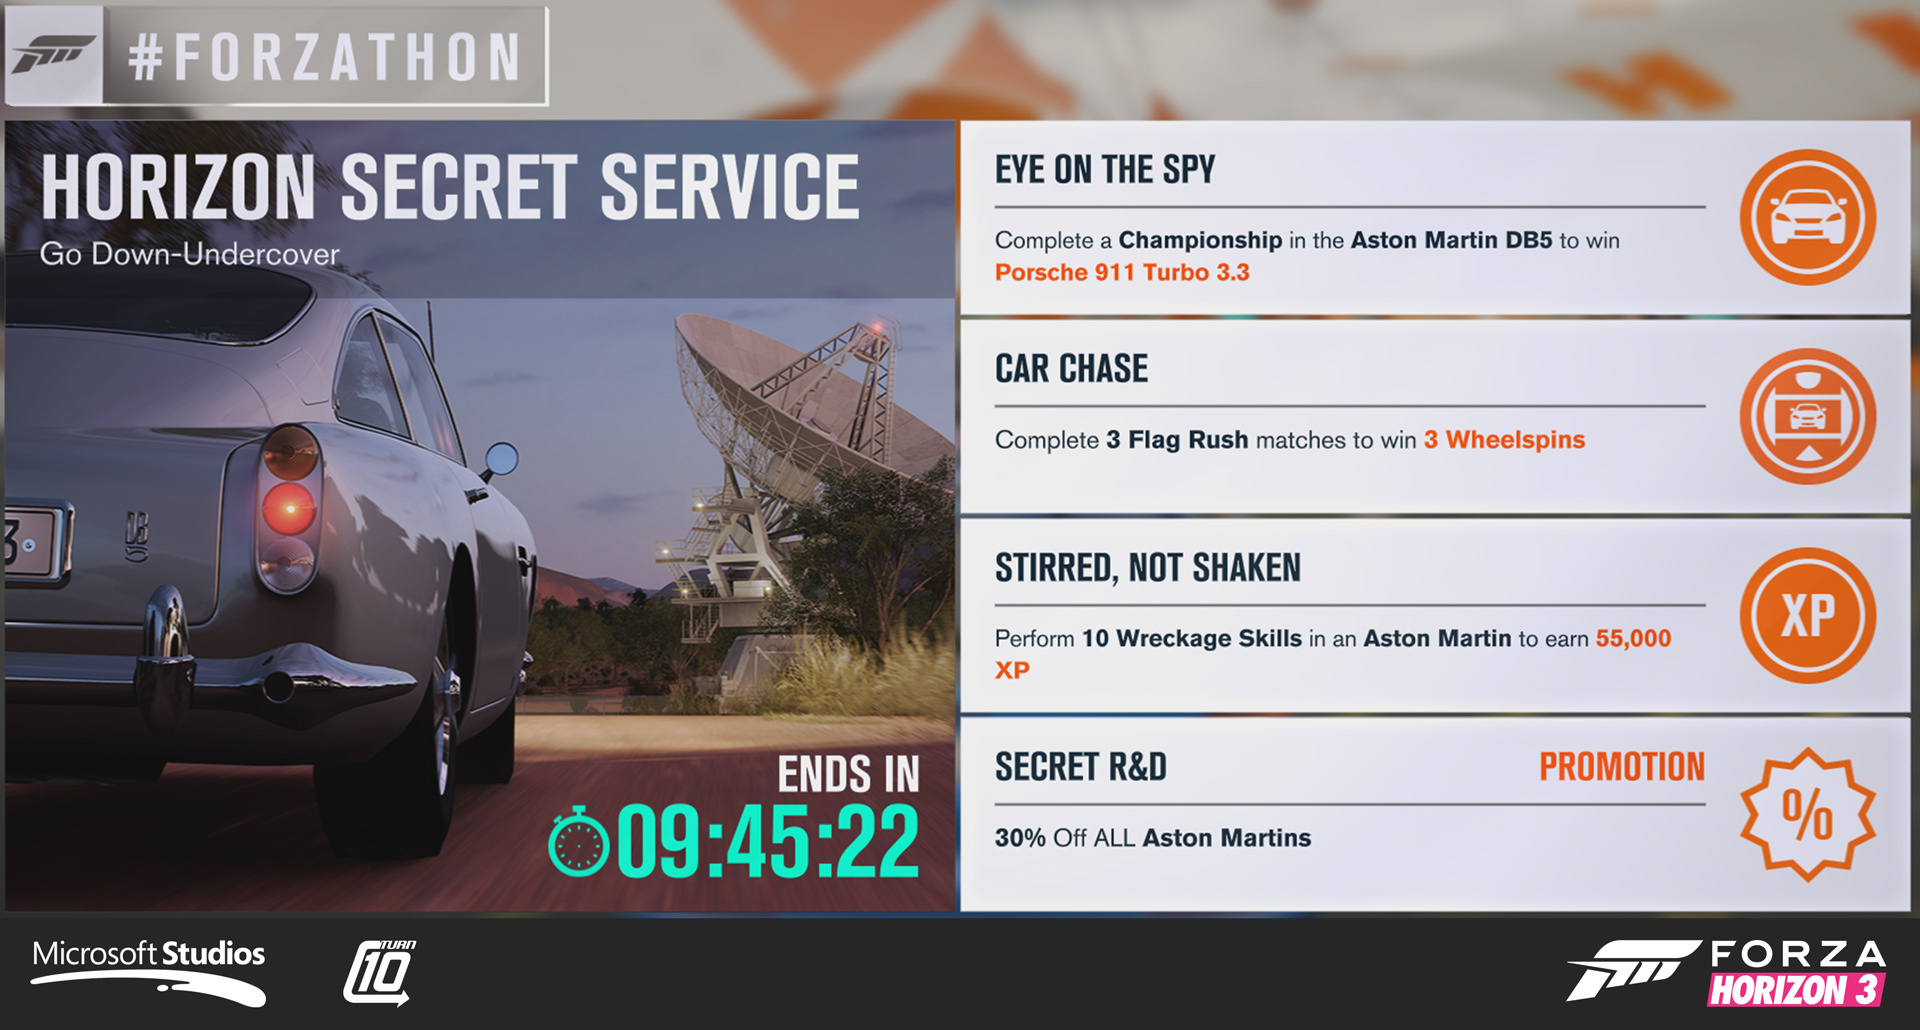 I was responsible for the screenshot for this Forza Horizon 3 Forzathon event. Art direction by Tim Dean. Collaborated with JC DeMoss on thematic direction.